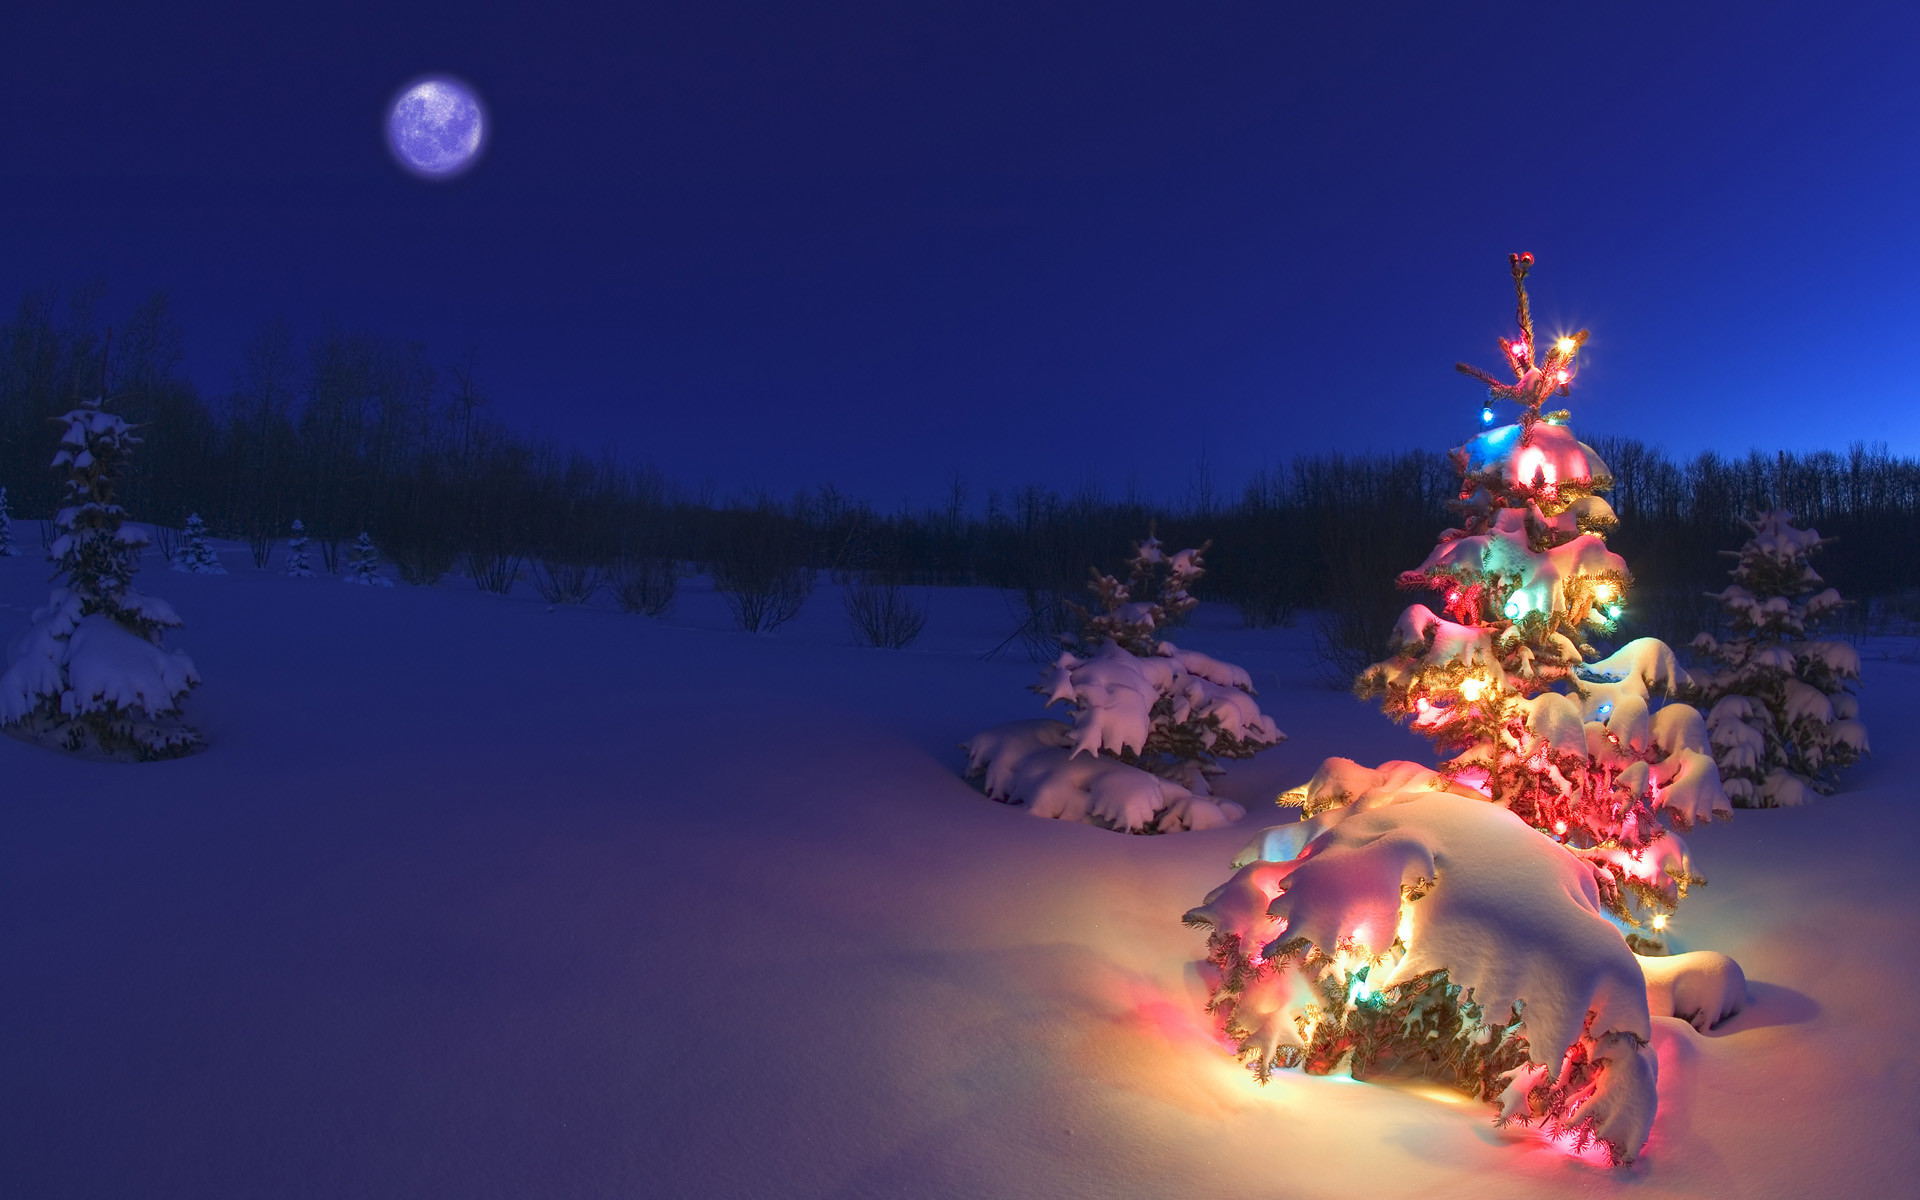 Res: 1920x1200, Tags: Happy Holidays 2012